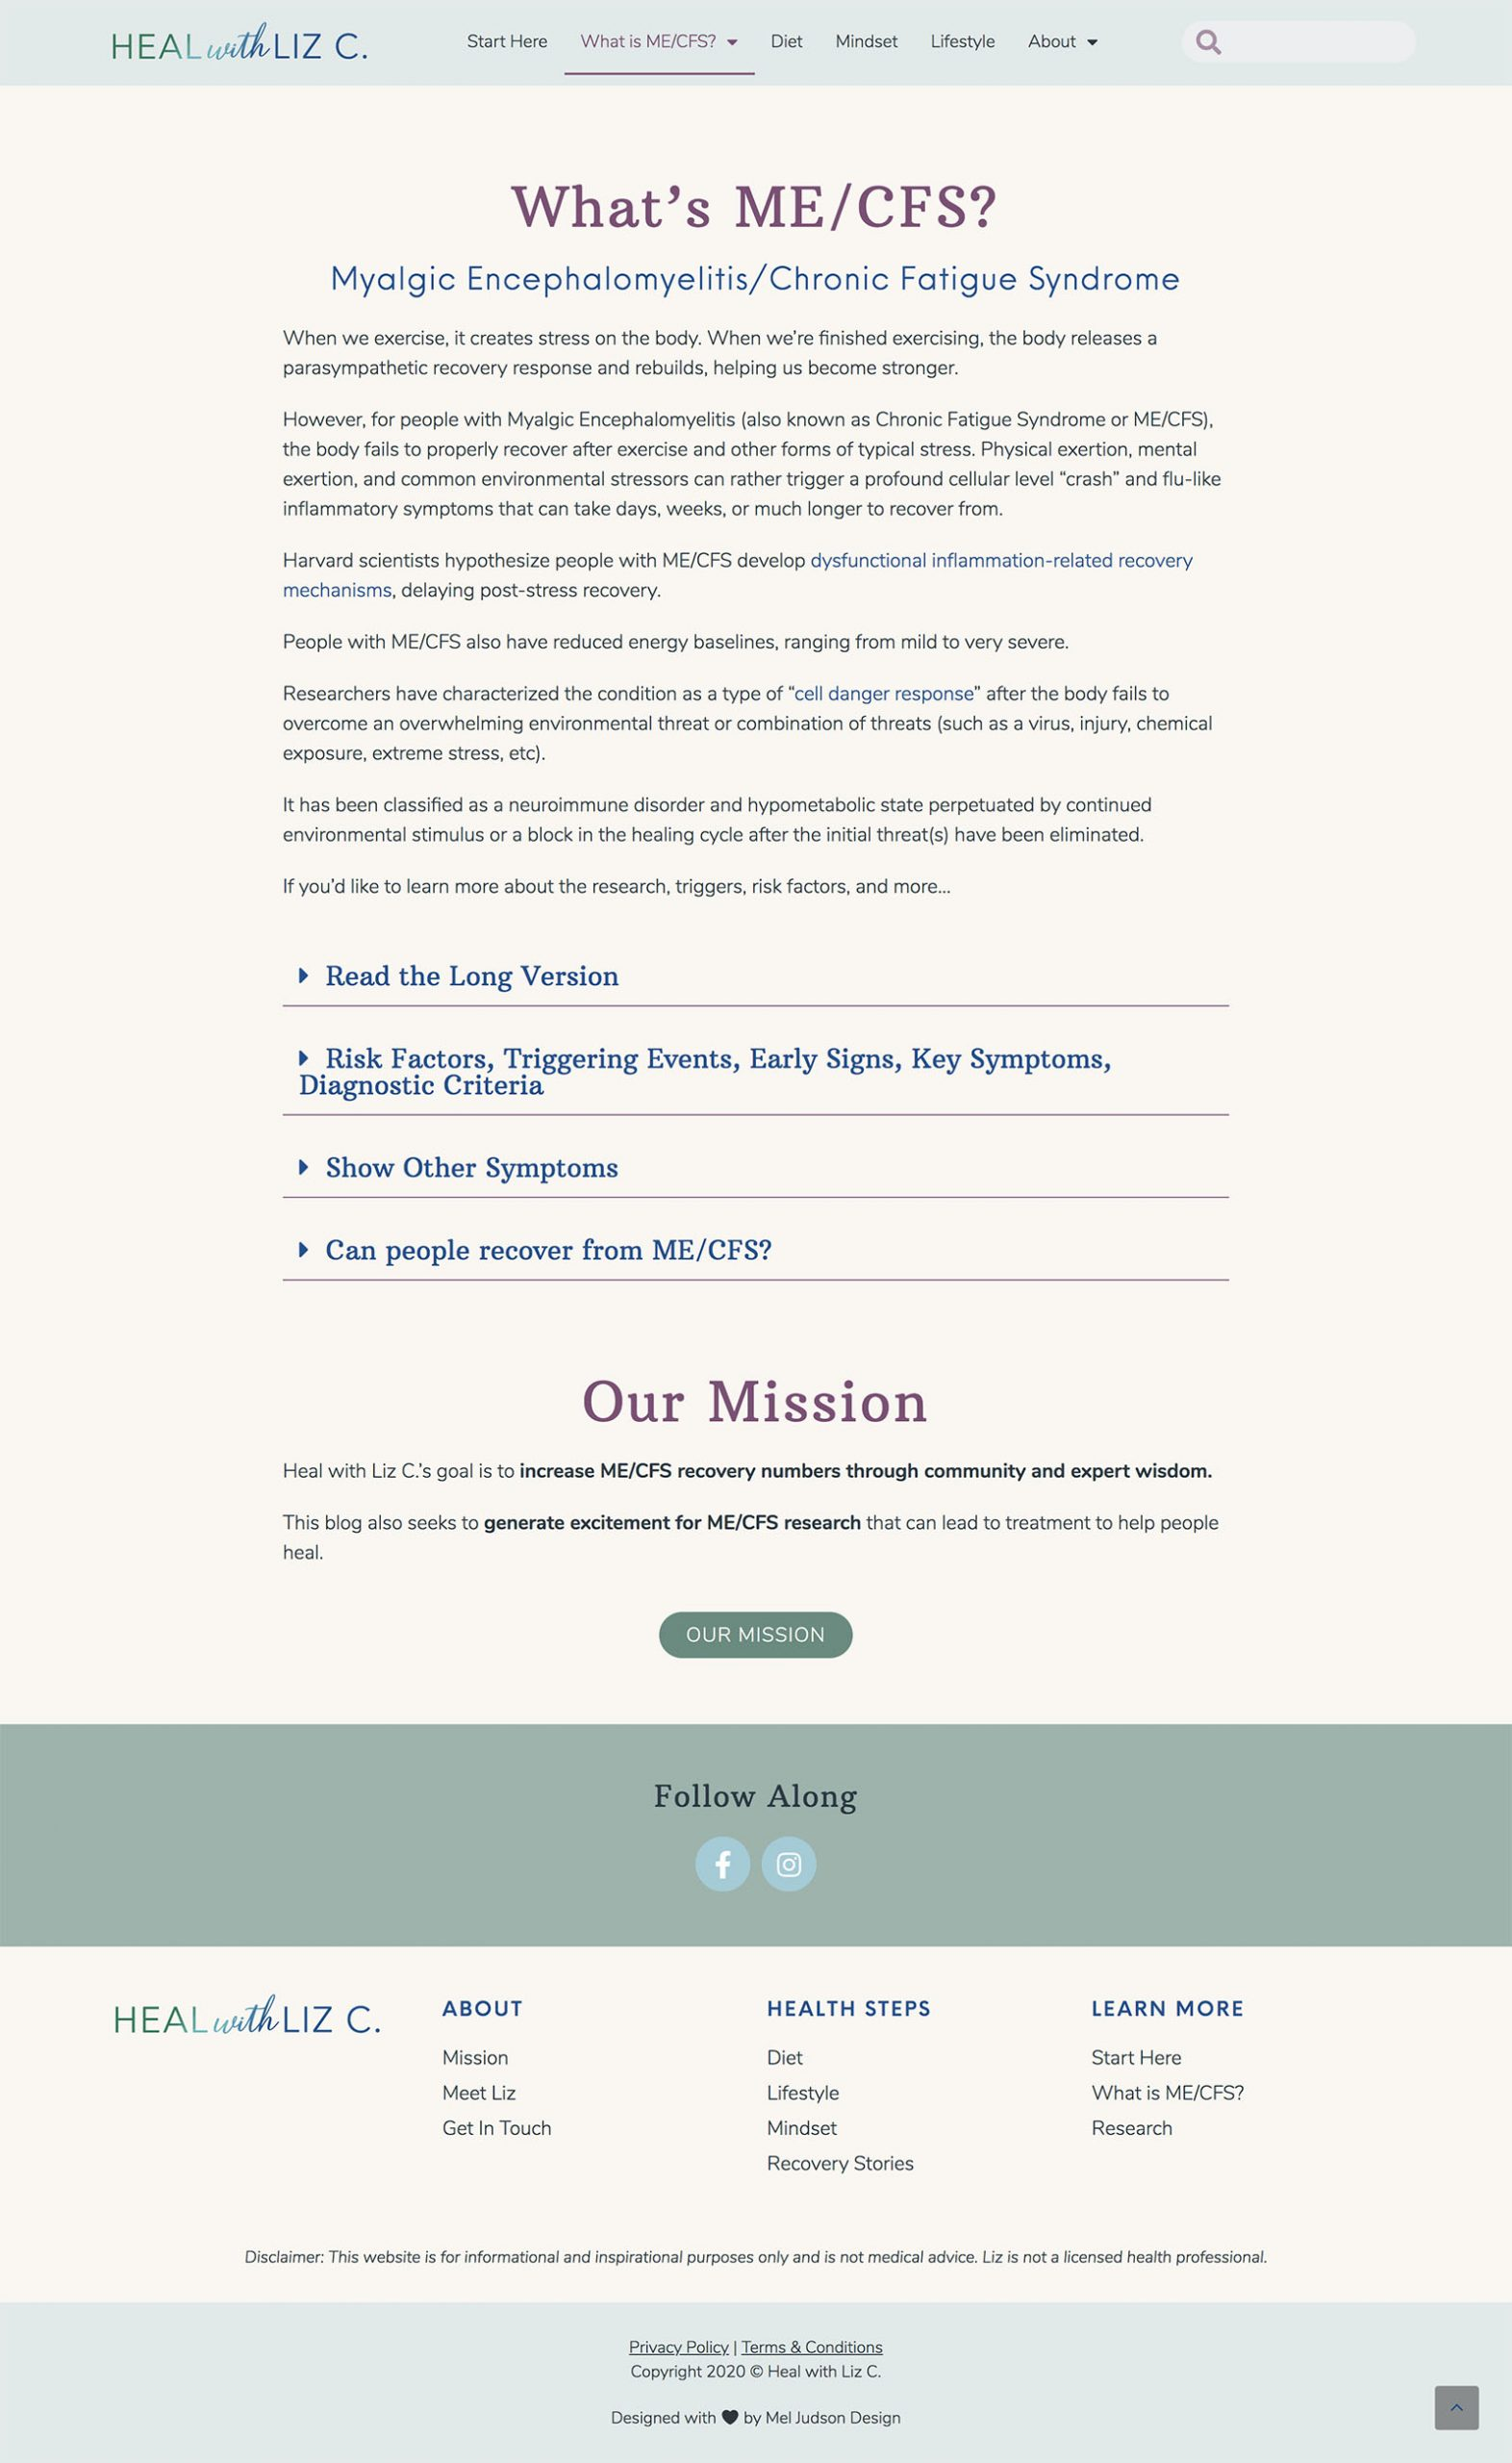 Heal with Liz Website Design What is ME/CFS Page Design by Mel Judson Branding and Web Design